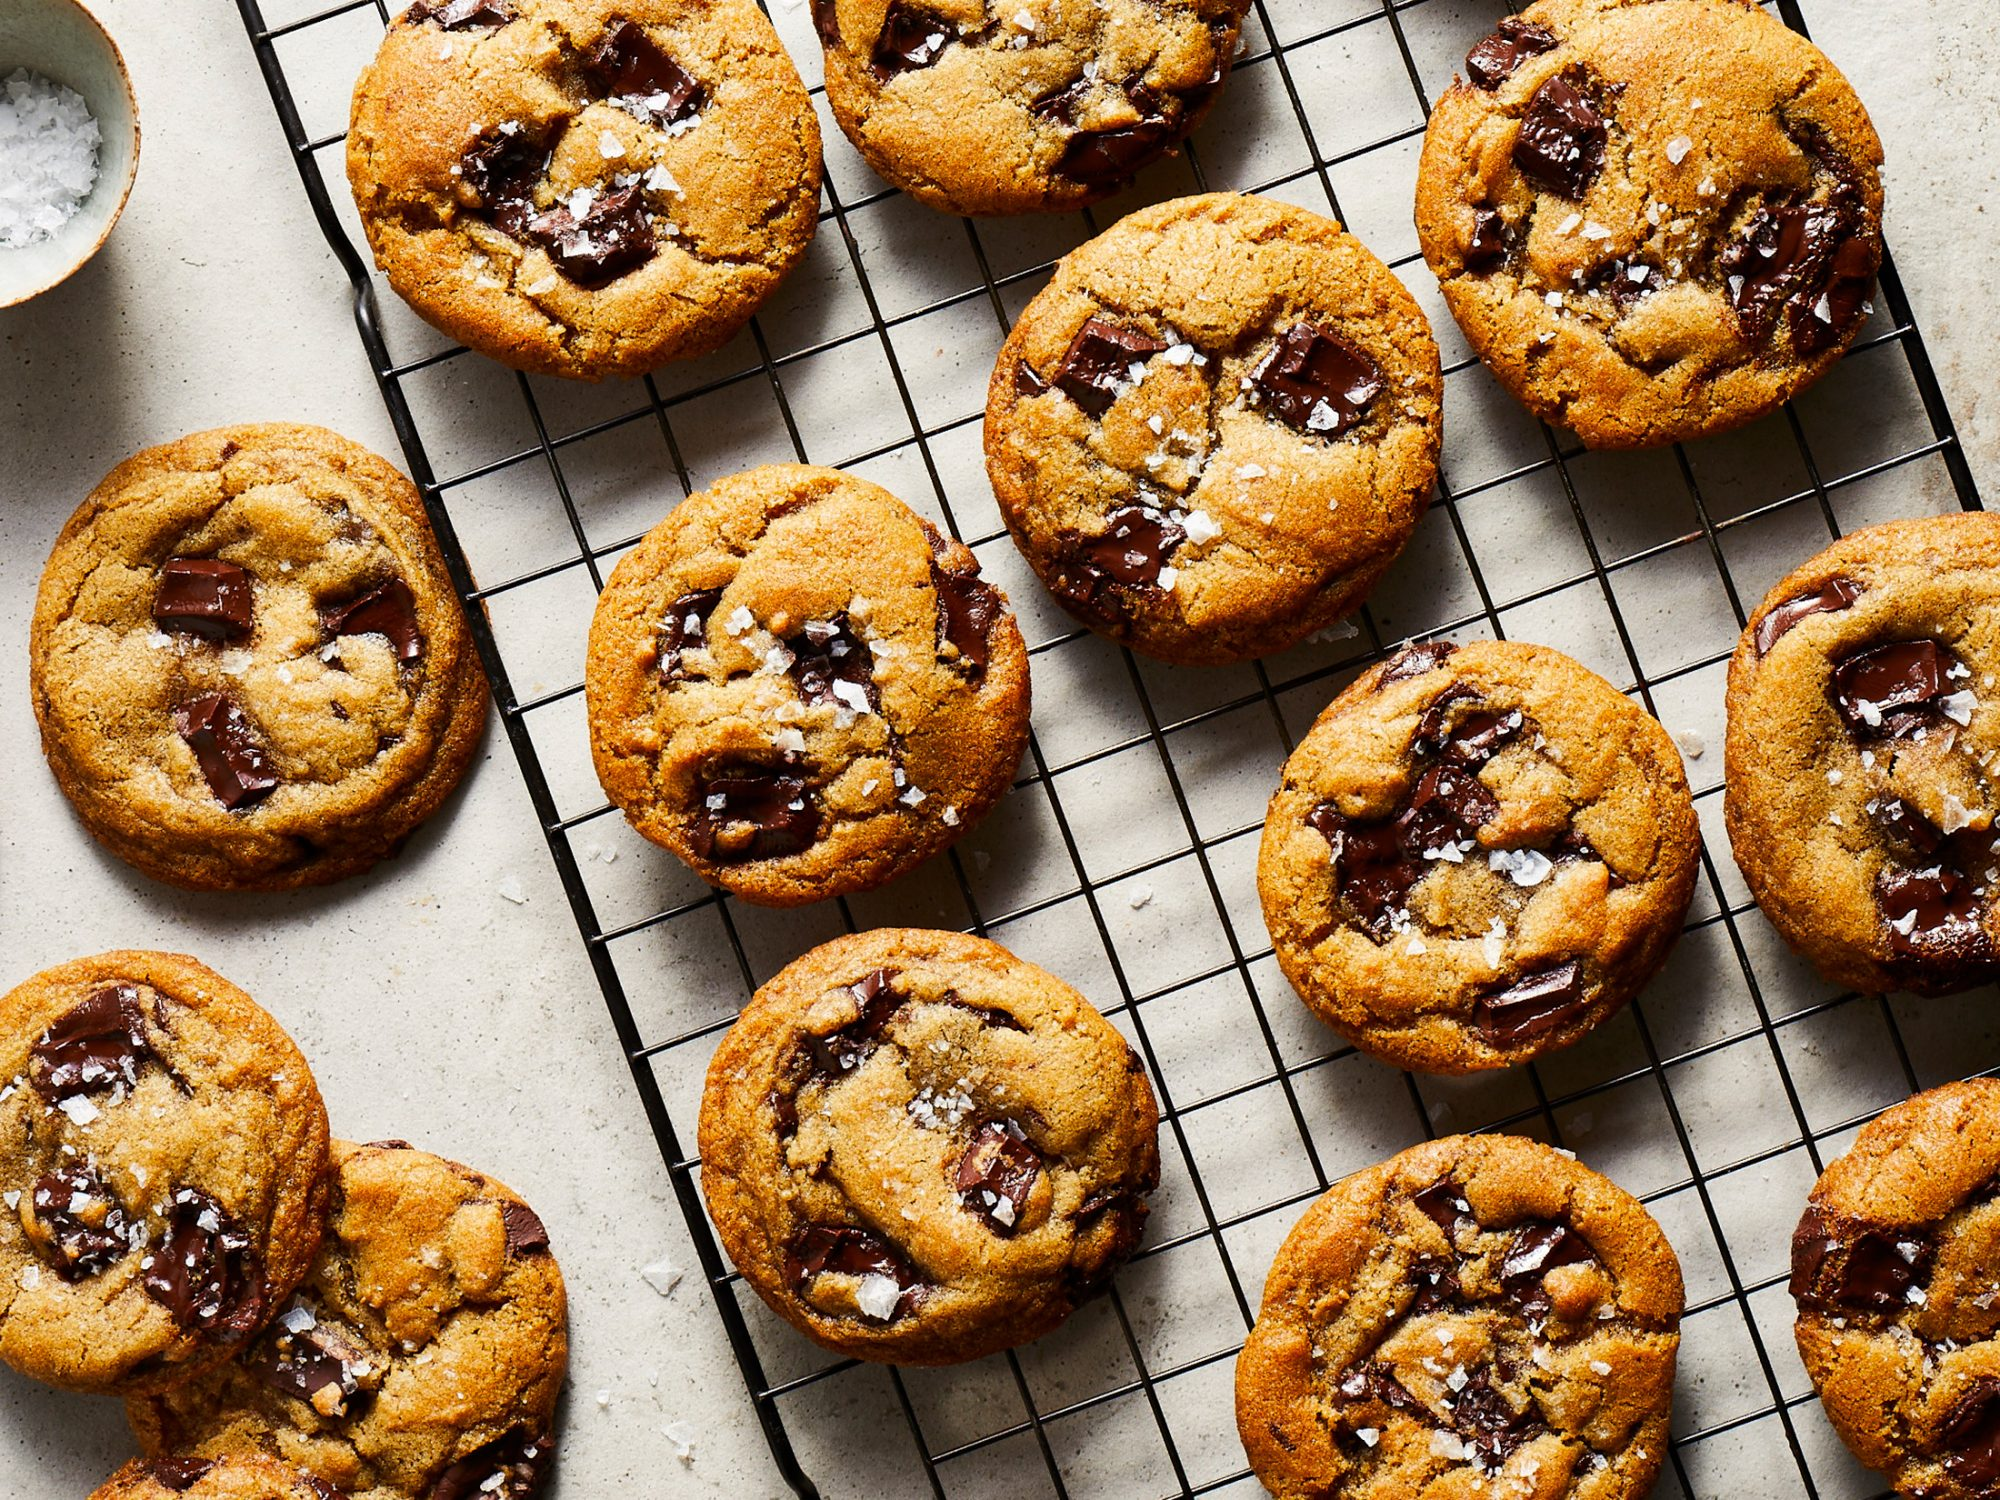 Olive Oil Chocolate Chip Cookies image